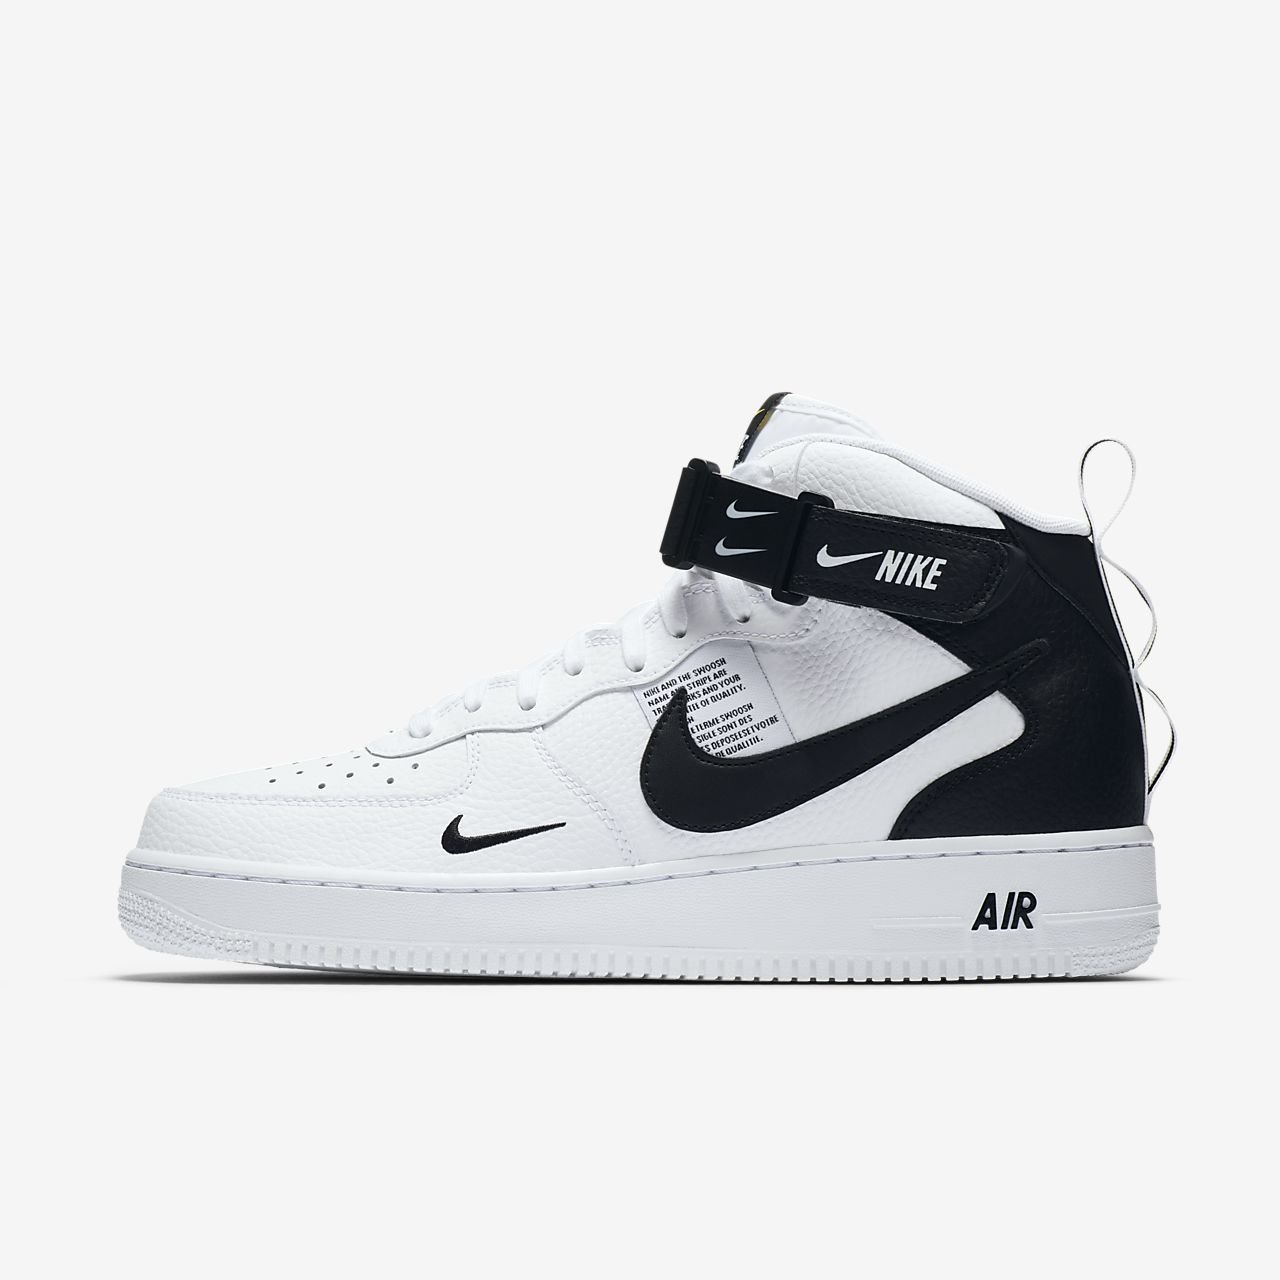 hot sale online 16636 e273c Nike Air Force 1 07 Mid LV8 Men's Shoe. Nike.com AU